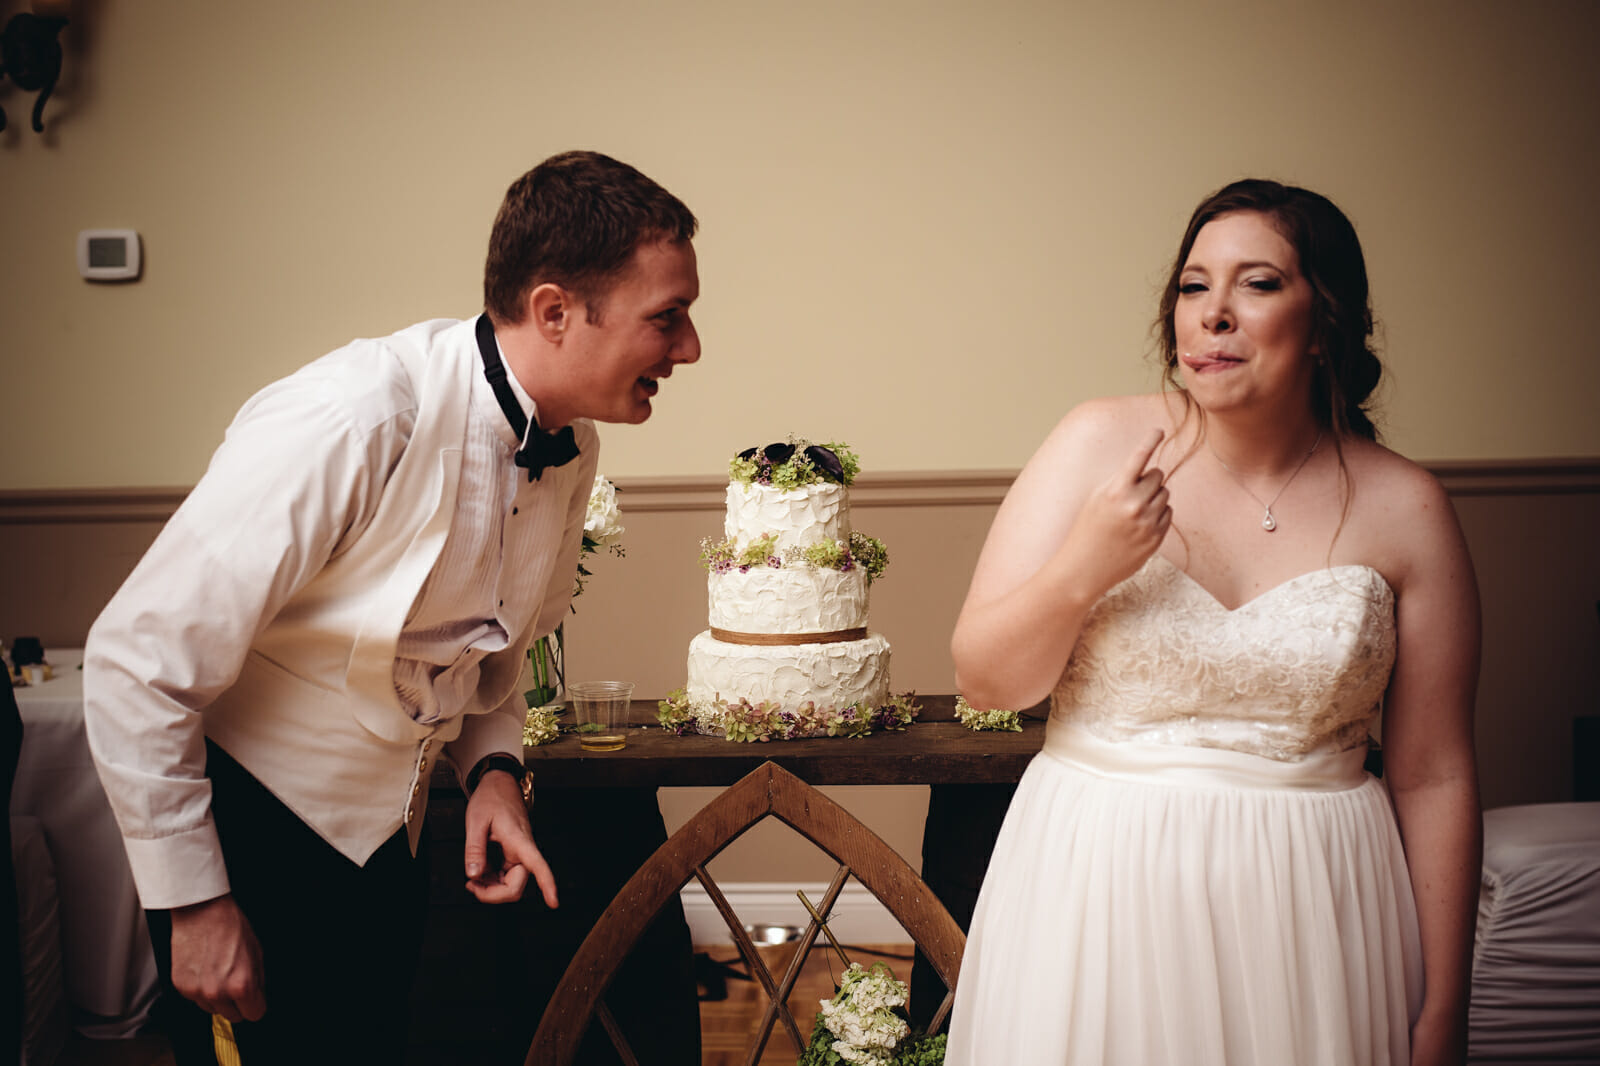 cake cutting photo by whitby wedding photographer